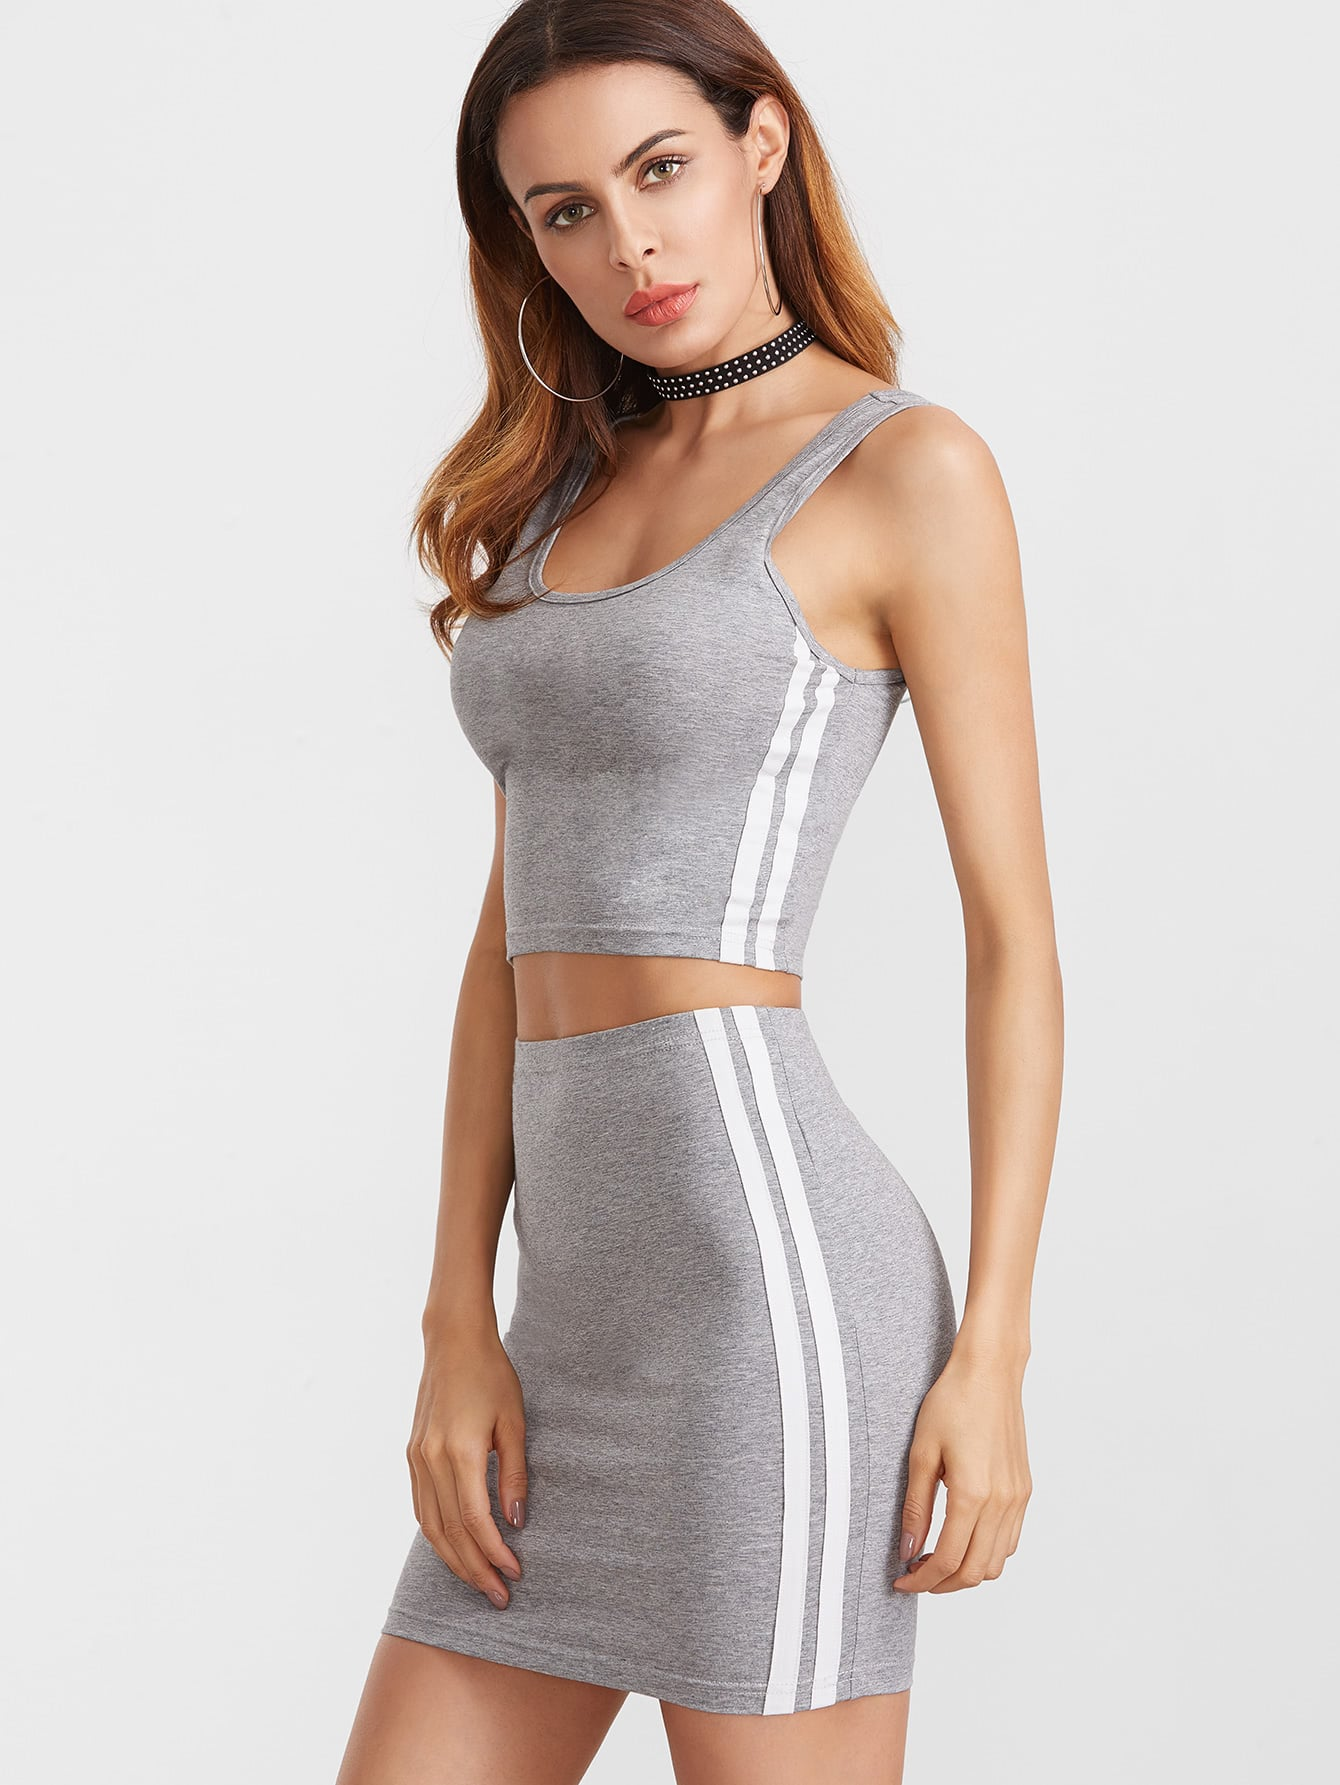 Heather Grey Double Scoop Neck Side Striped Tank Top With Skirt